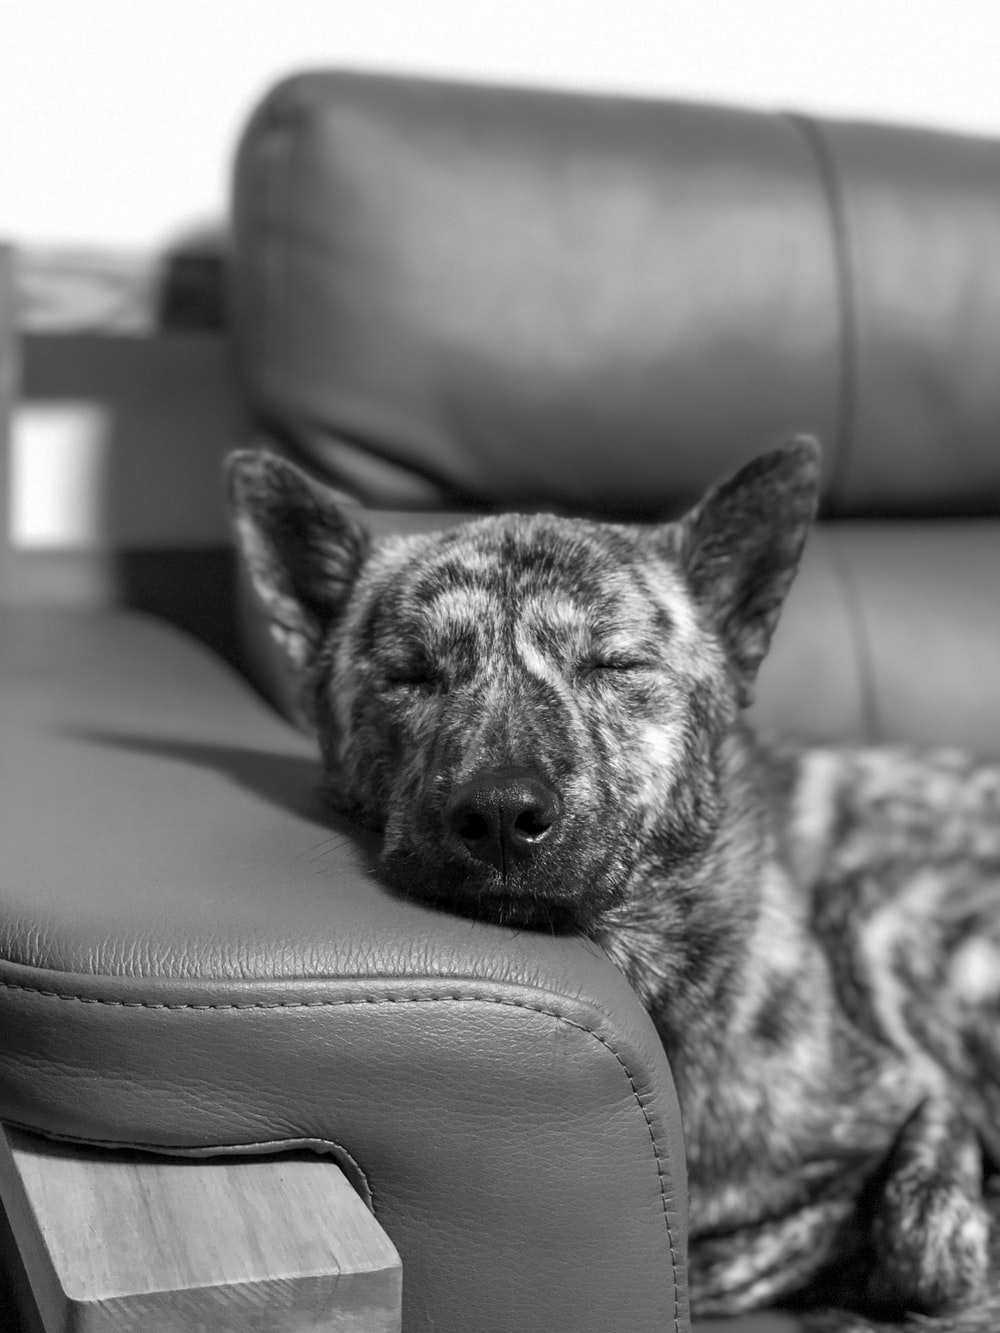 grayscale photo of short coated dog on couch